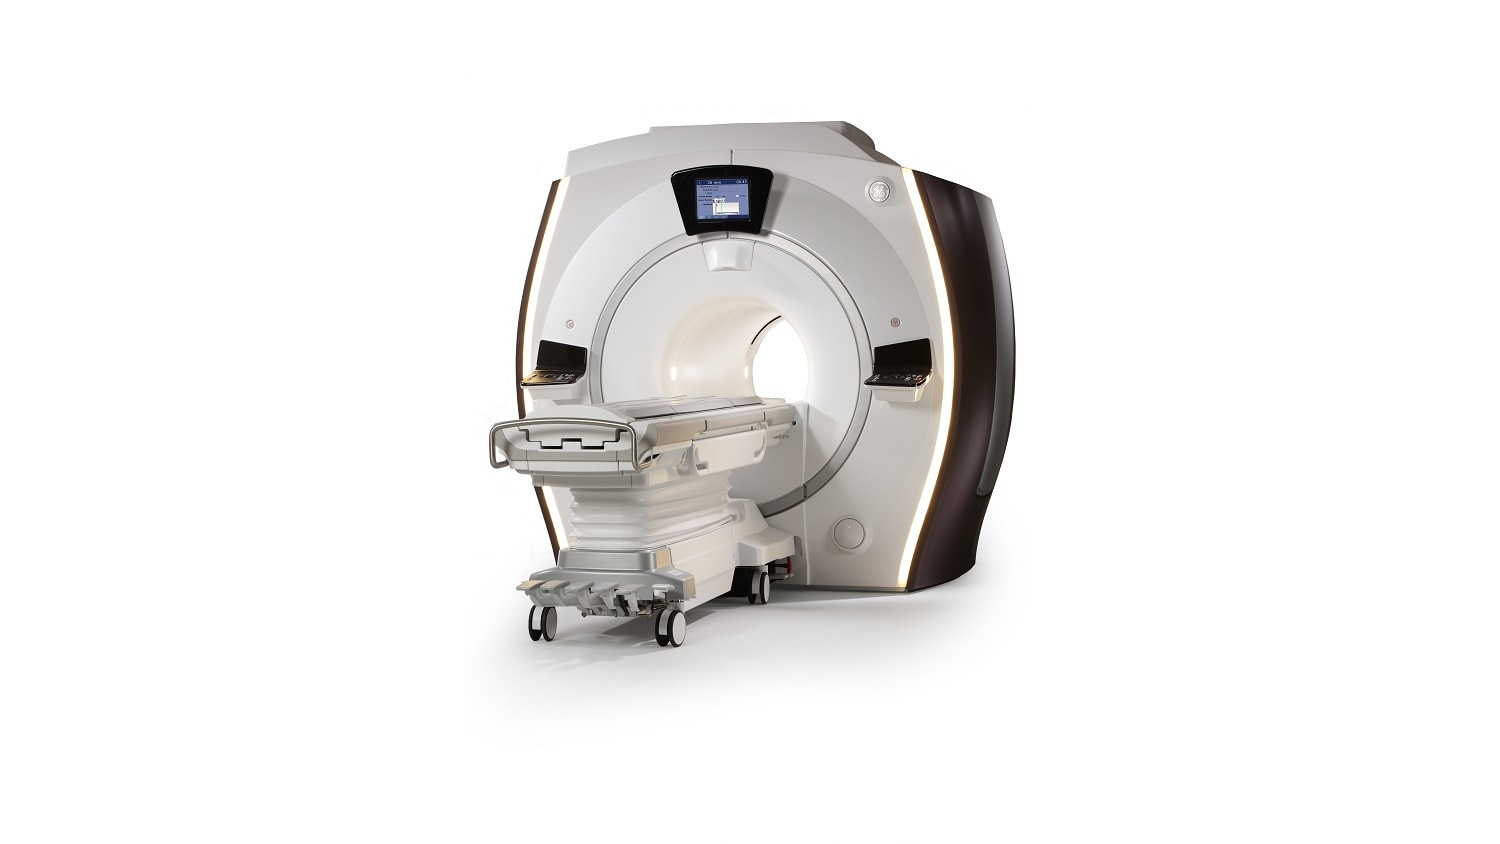 tion-product-education-clinical-tip-applications-magnetic-resonance-imaging-mri15tesla.jpg